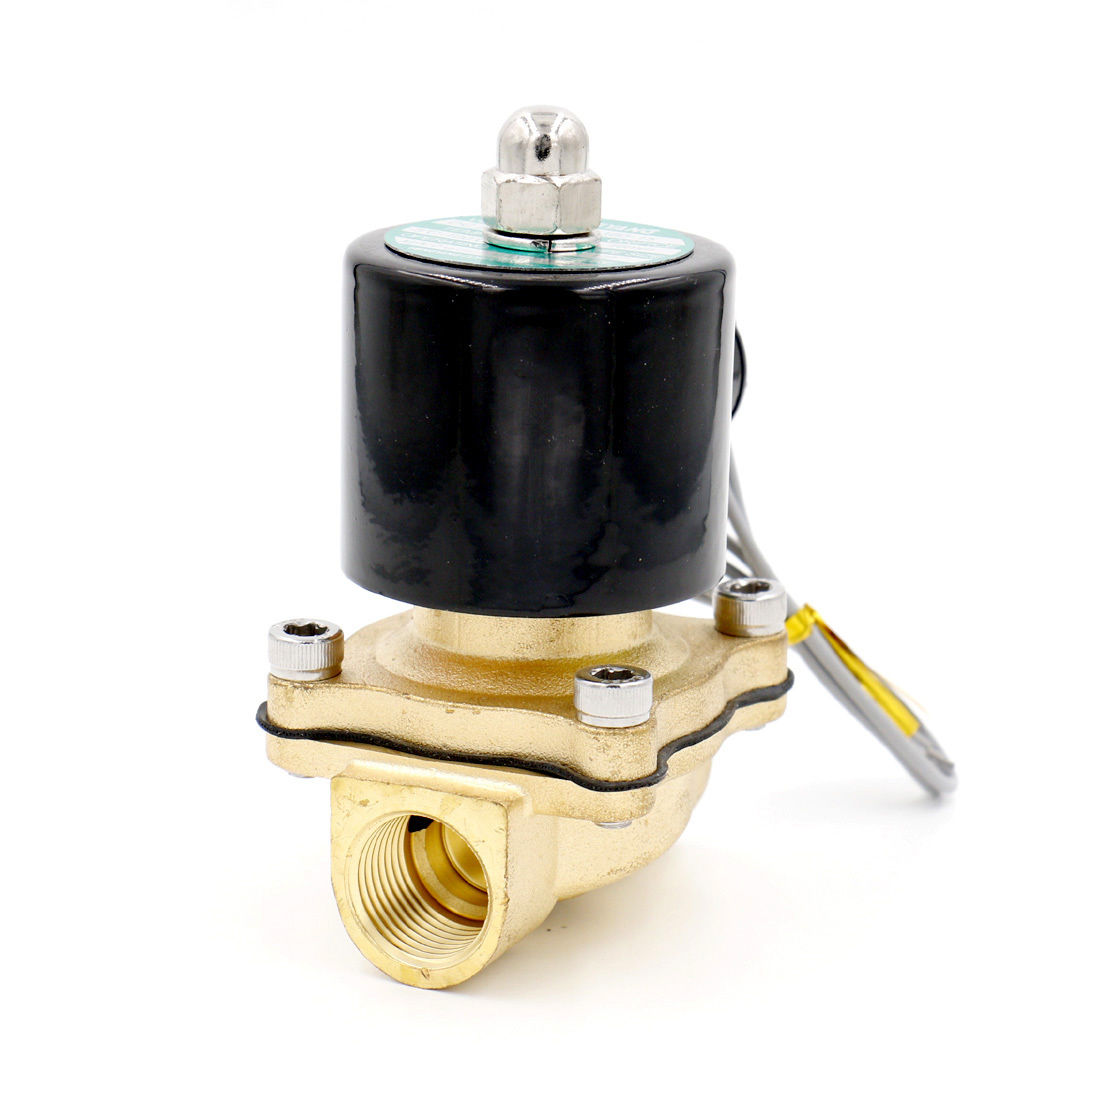 все цены на Brass Electric Solenoid Valve 2W-160-15 1/2 Inch NPT for Air Water Valve 12V NC онлайн